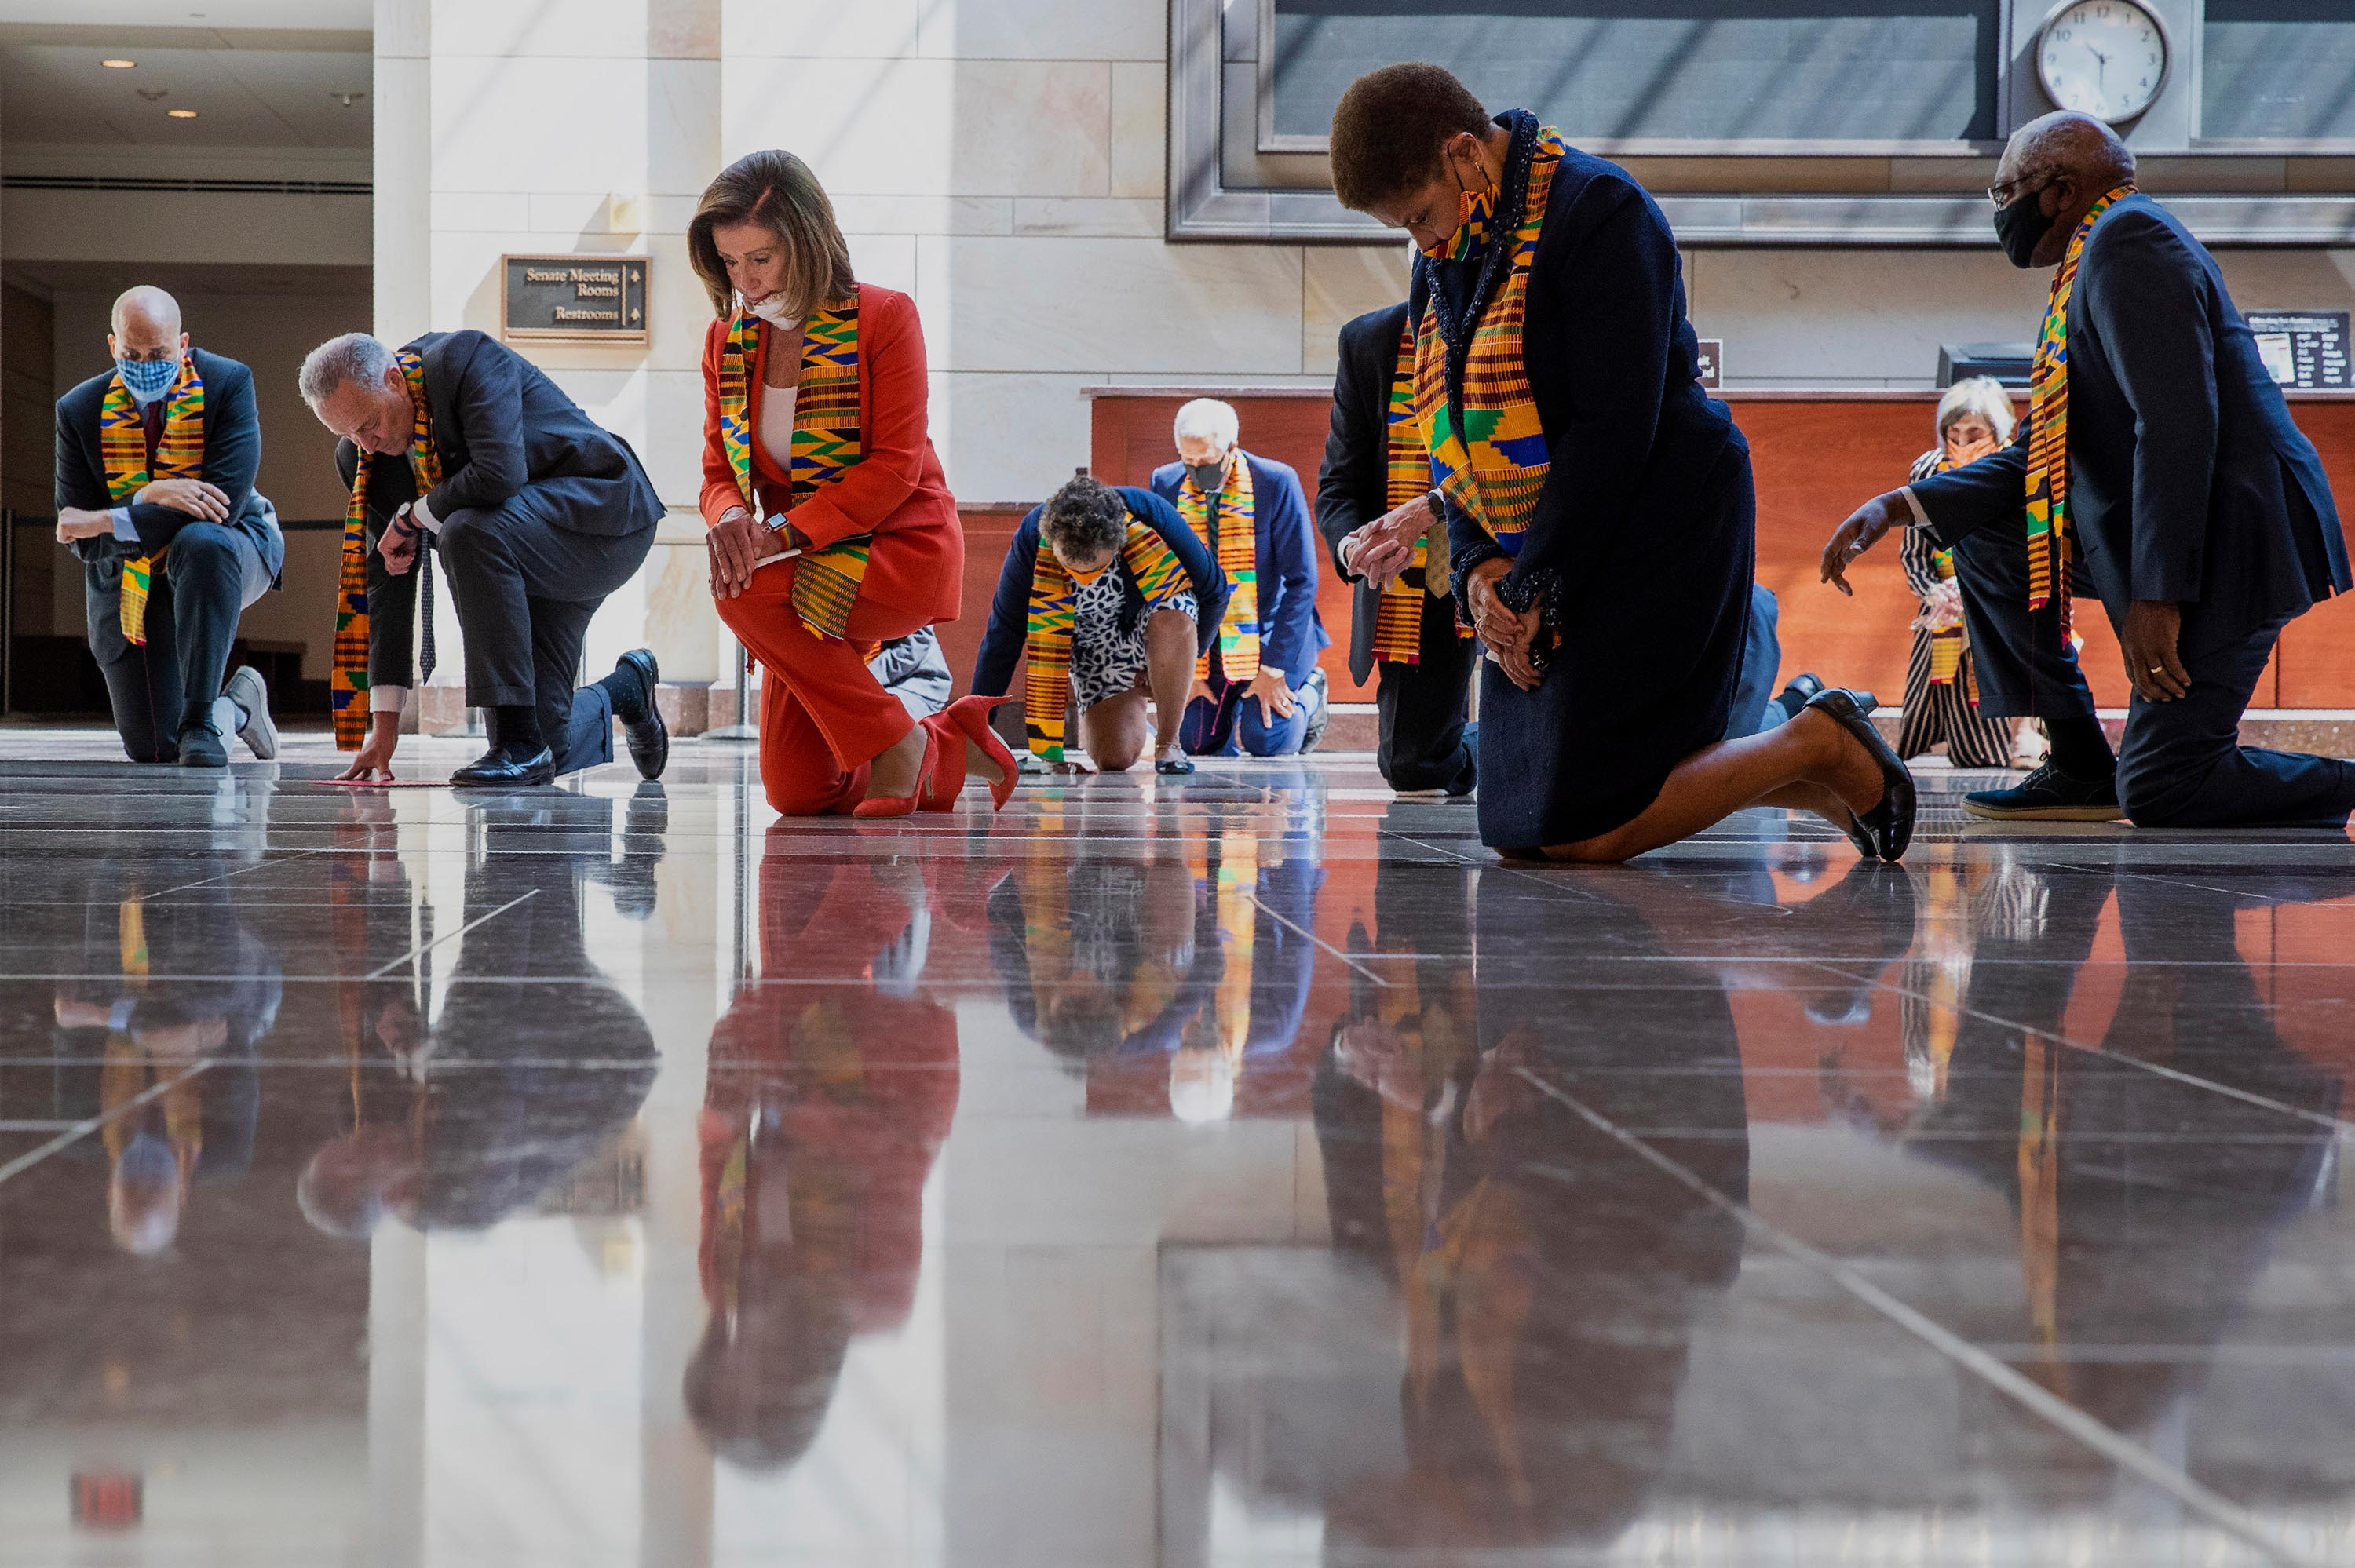 Congressional Democrats criticized for wearing Kente cloth at event  honoring George Floyd | KTLA